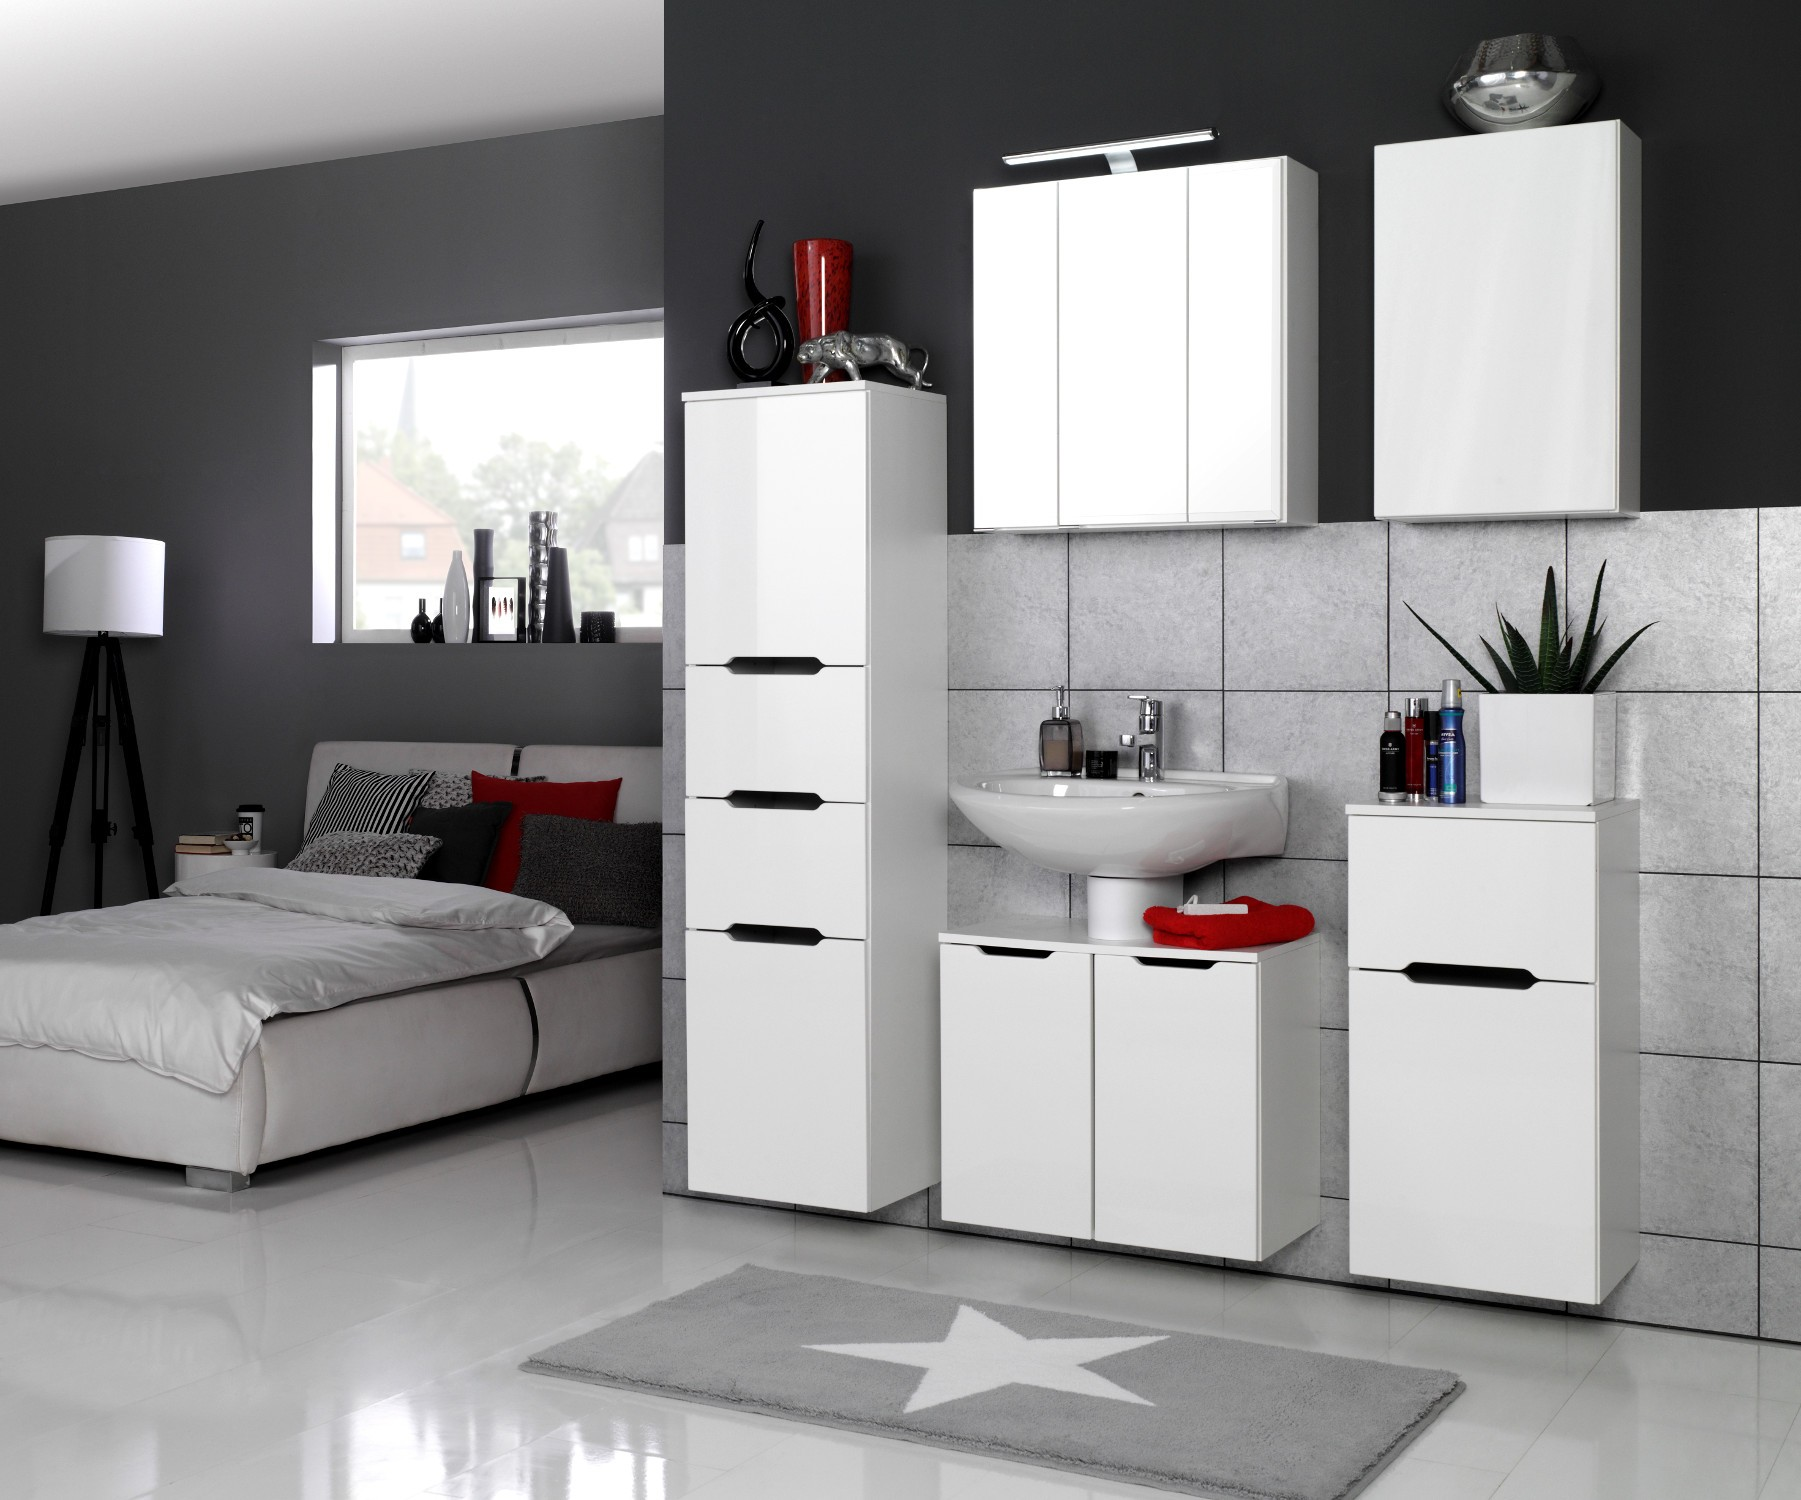 bad unterschrank belluno 1 t rig 1 auszug 40 cm breit. Black Bedroom Furniture Sets. Home Design Ideas